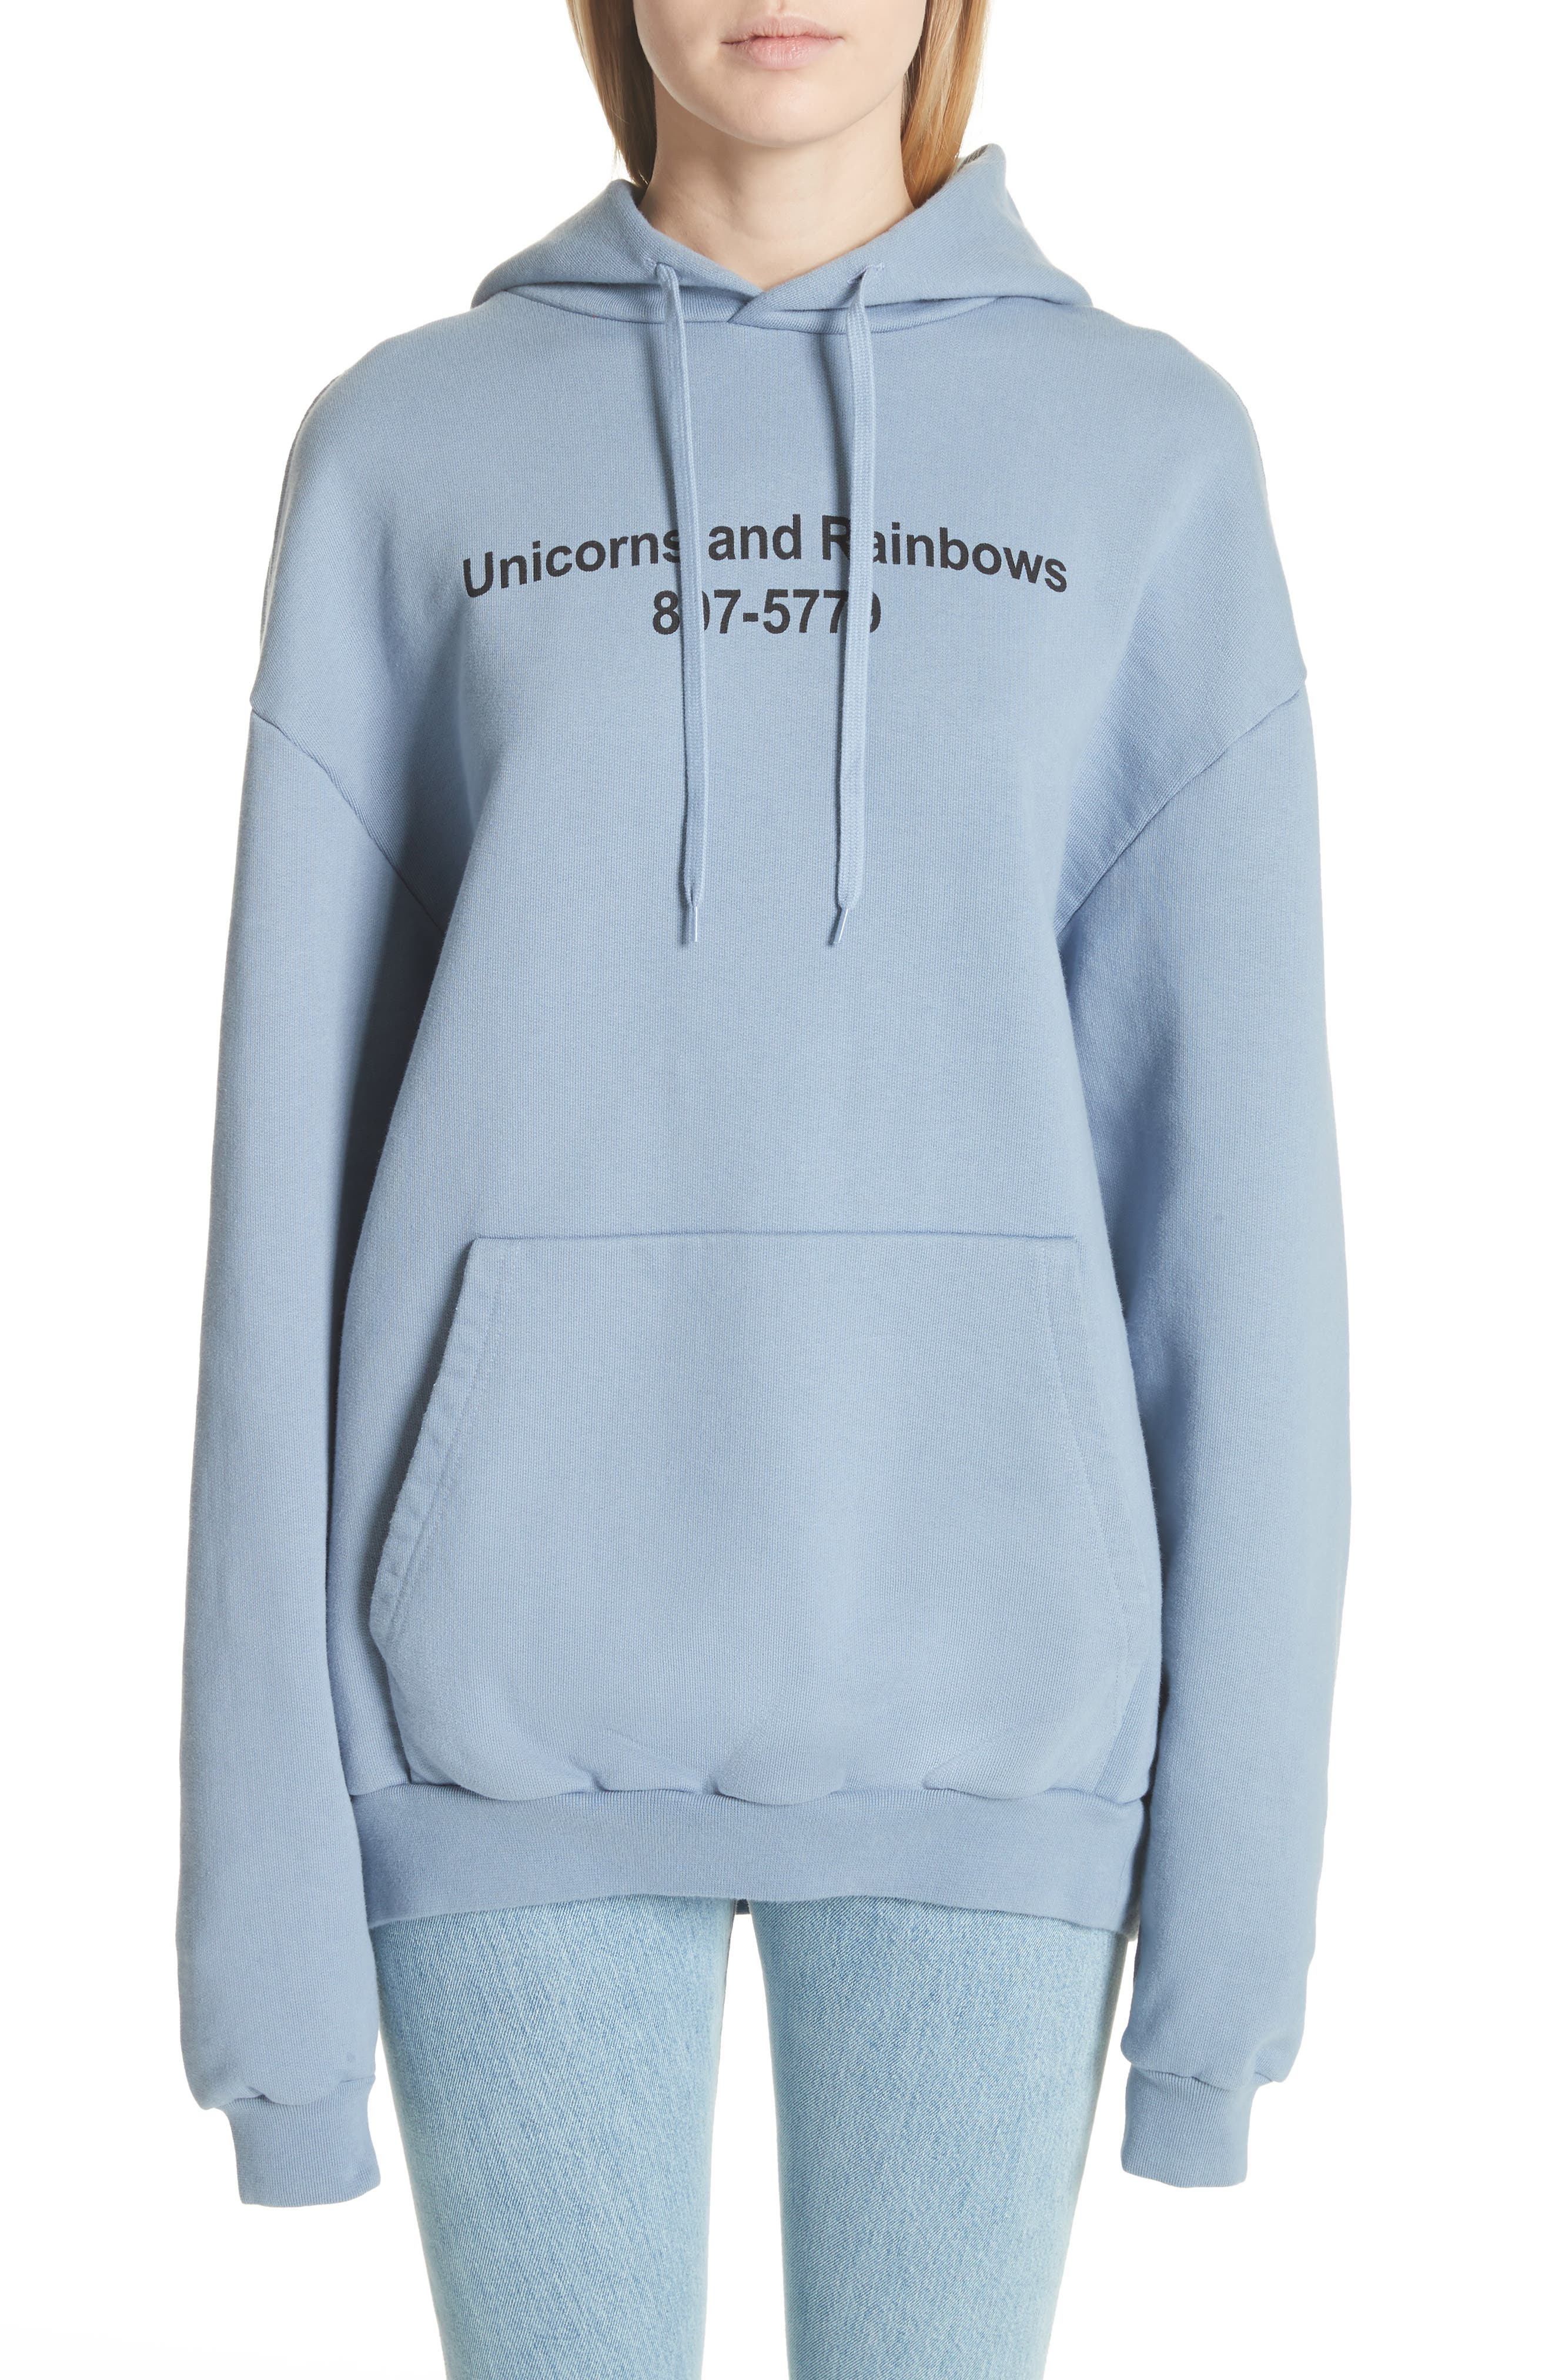 Vetements Unicorns & Rainbows Print Hoodie